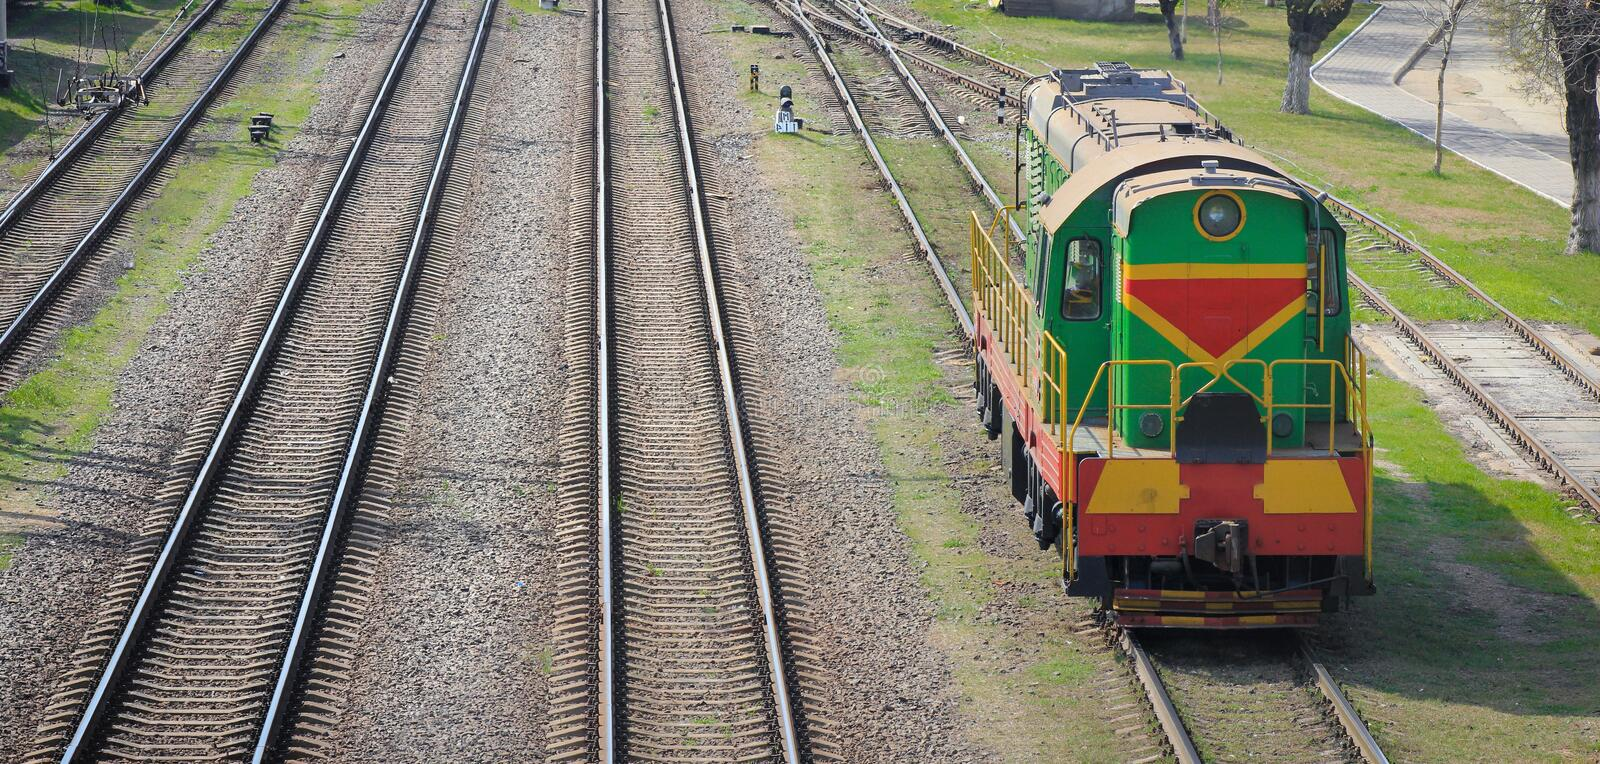 Shunting locomotive on railway station Sorting. Descent of dissolution and formation of freight trains stock image